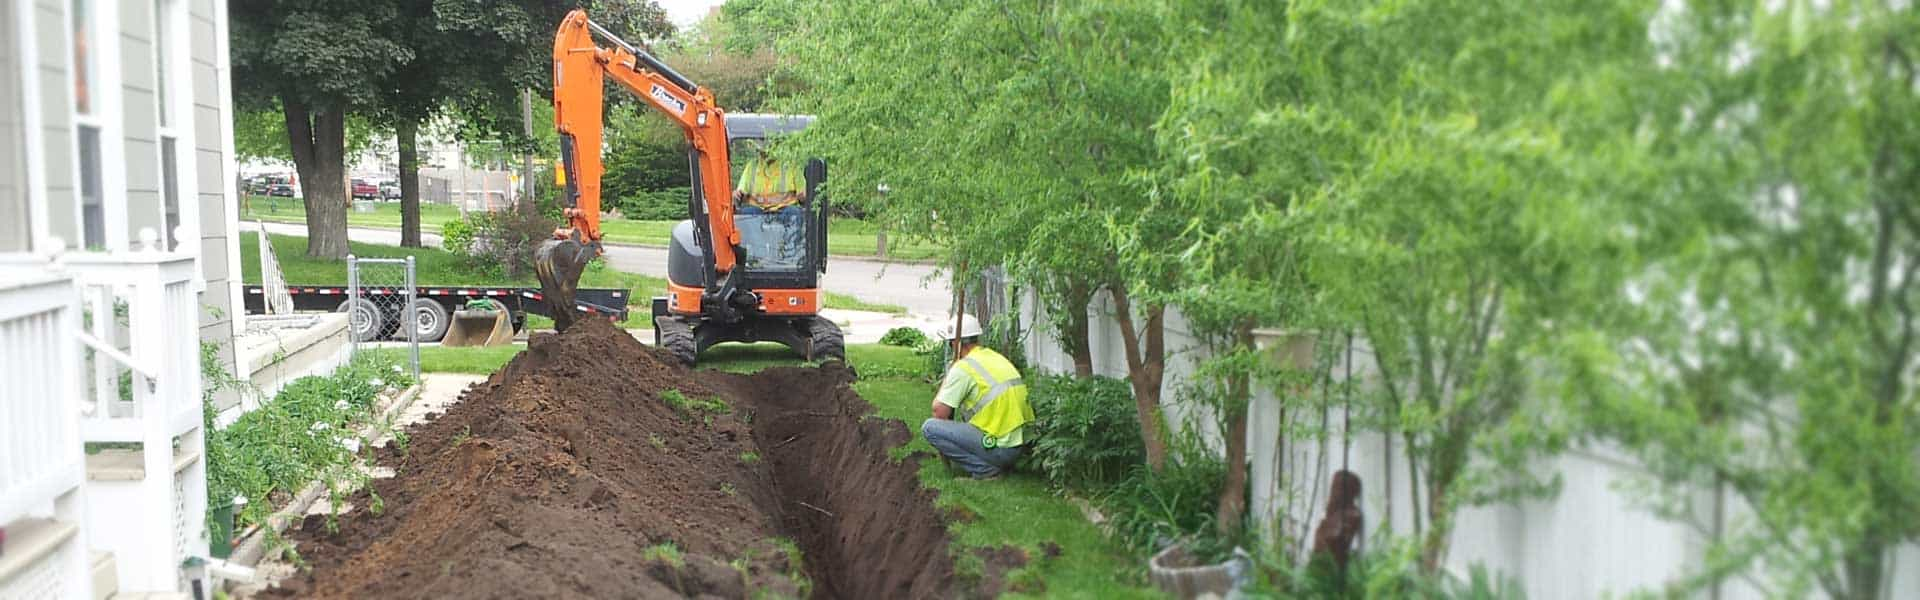 sewer-replacement-excavation-nj